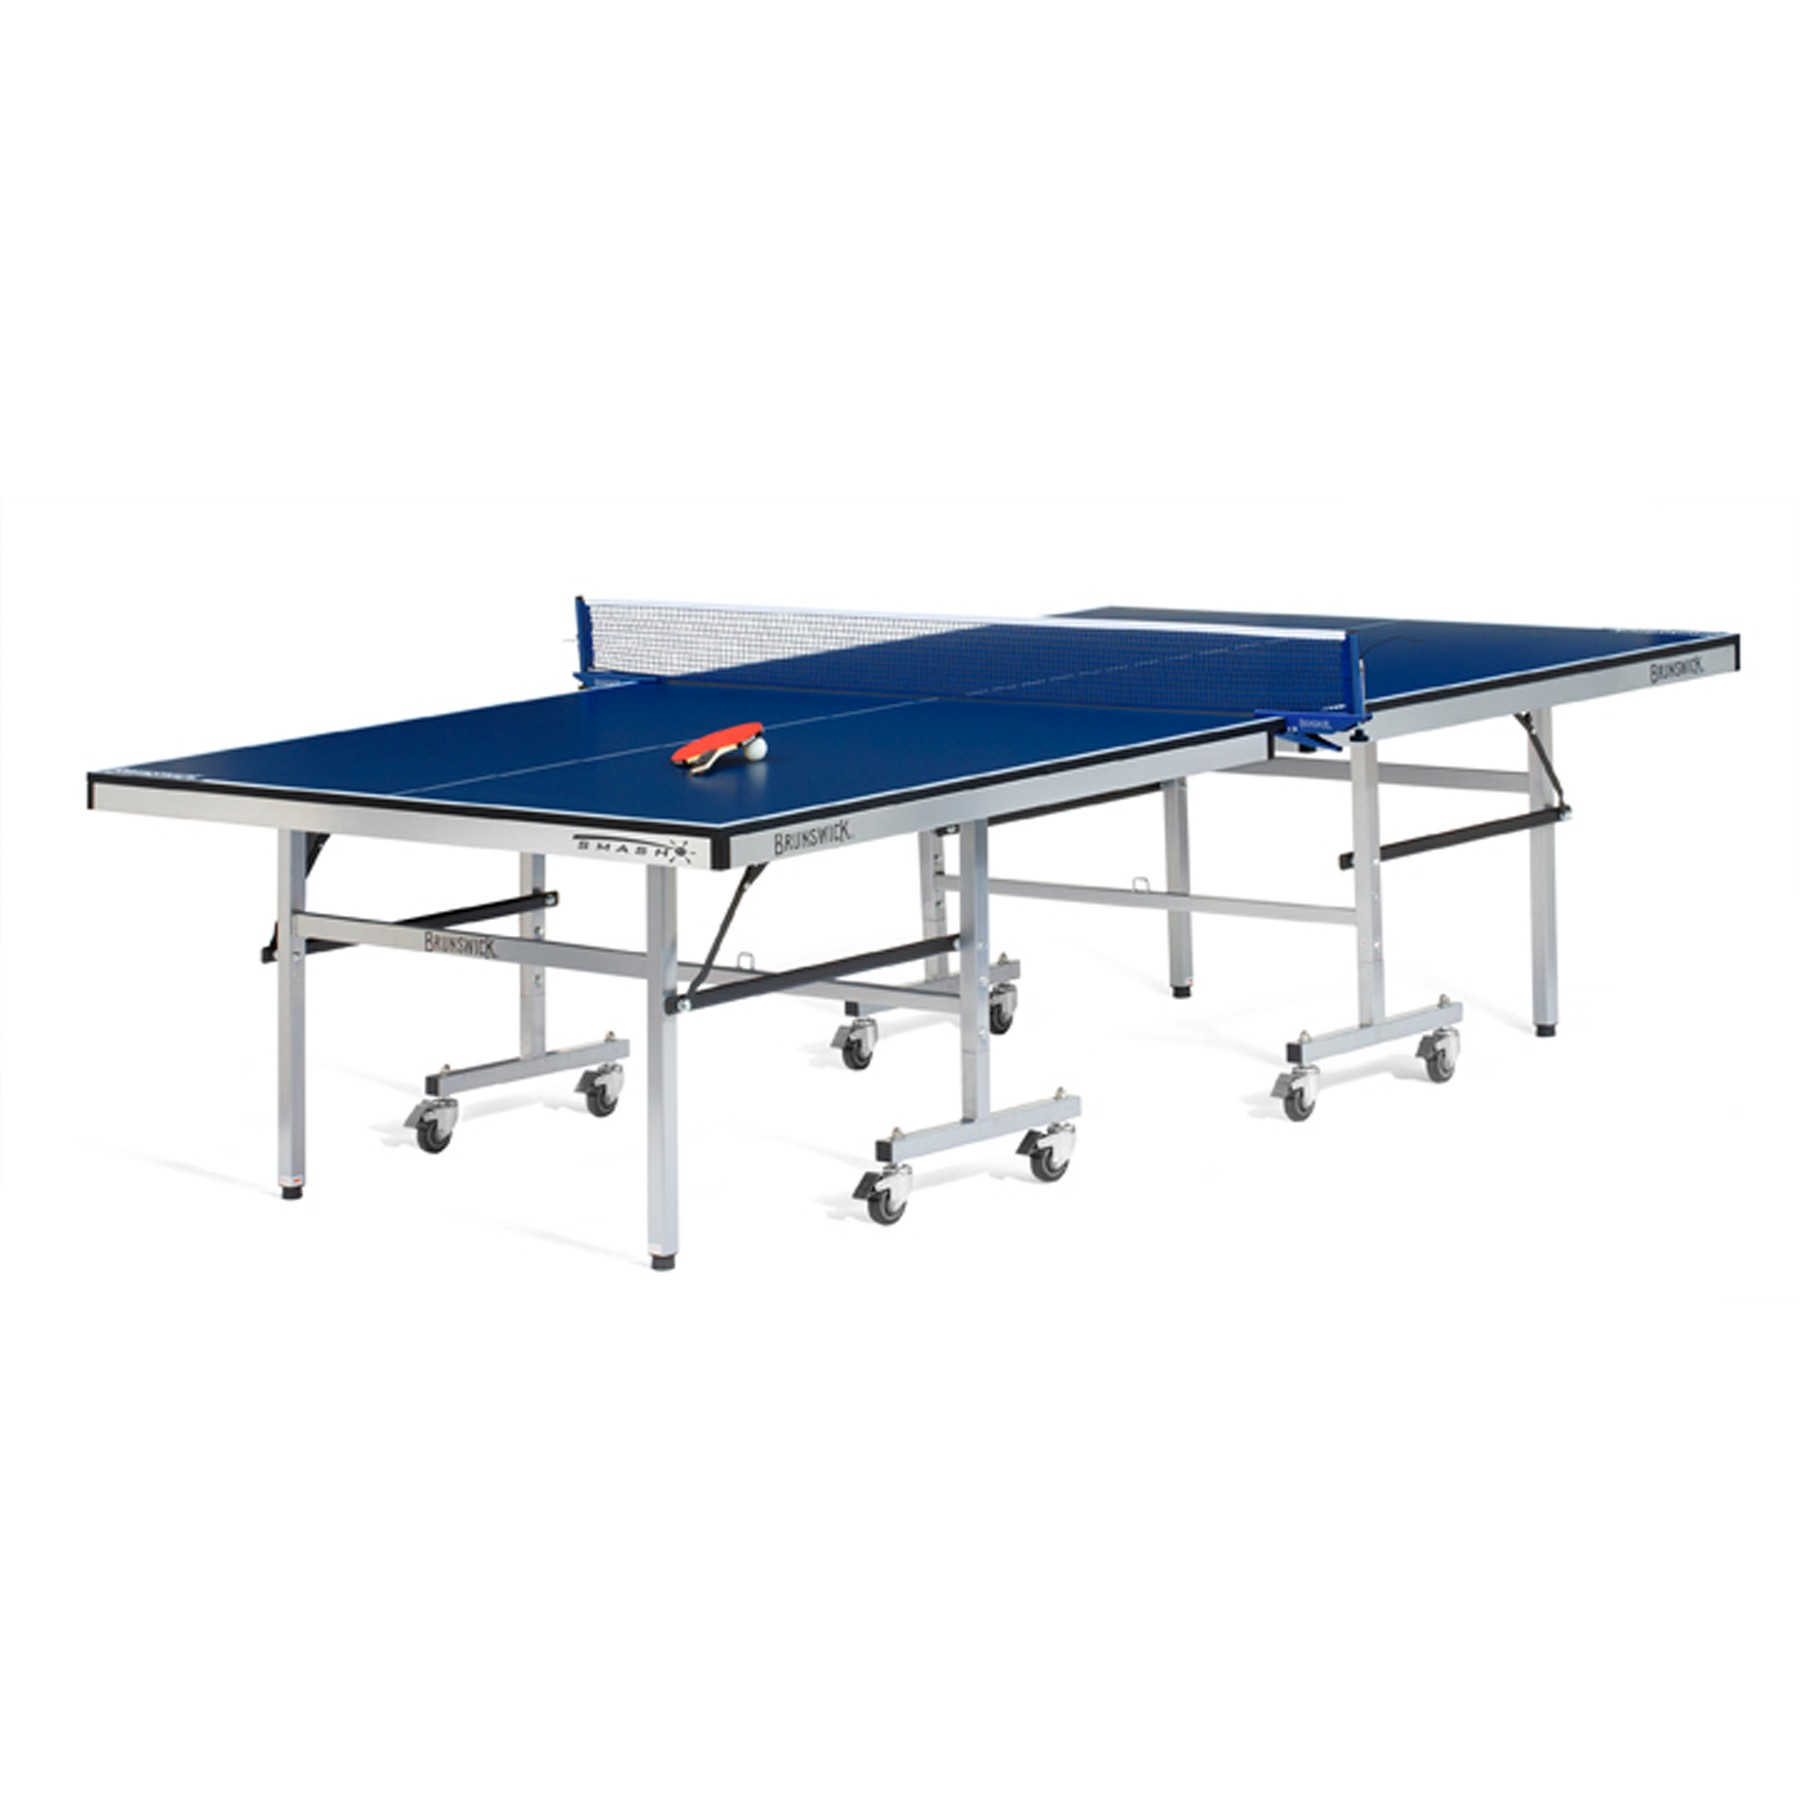 How To Choose An Outdoor Table Tennis Table